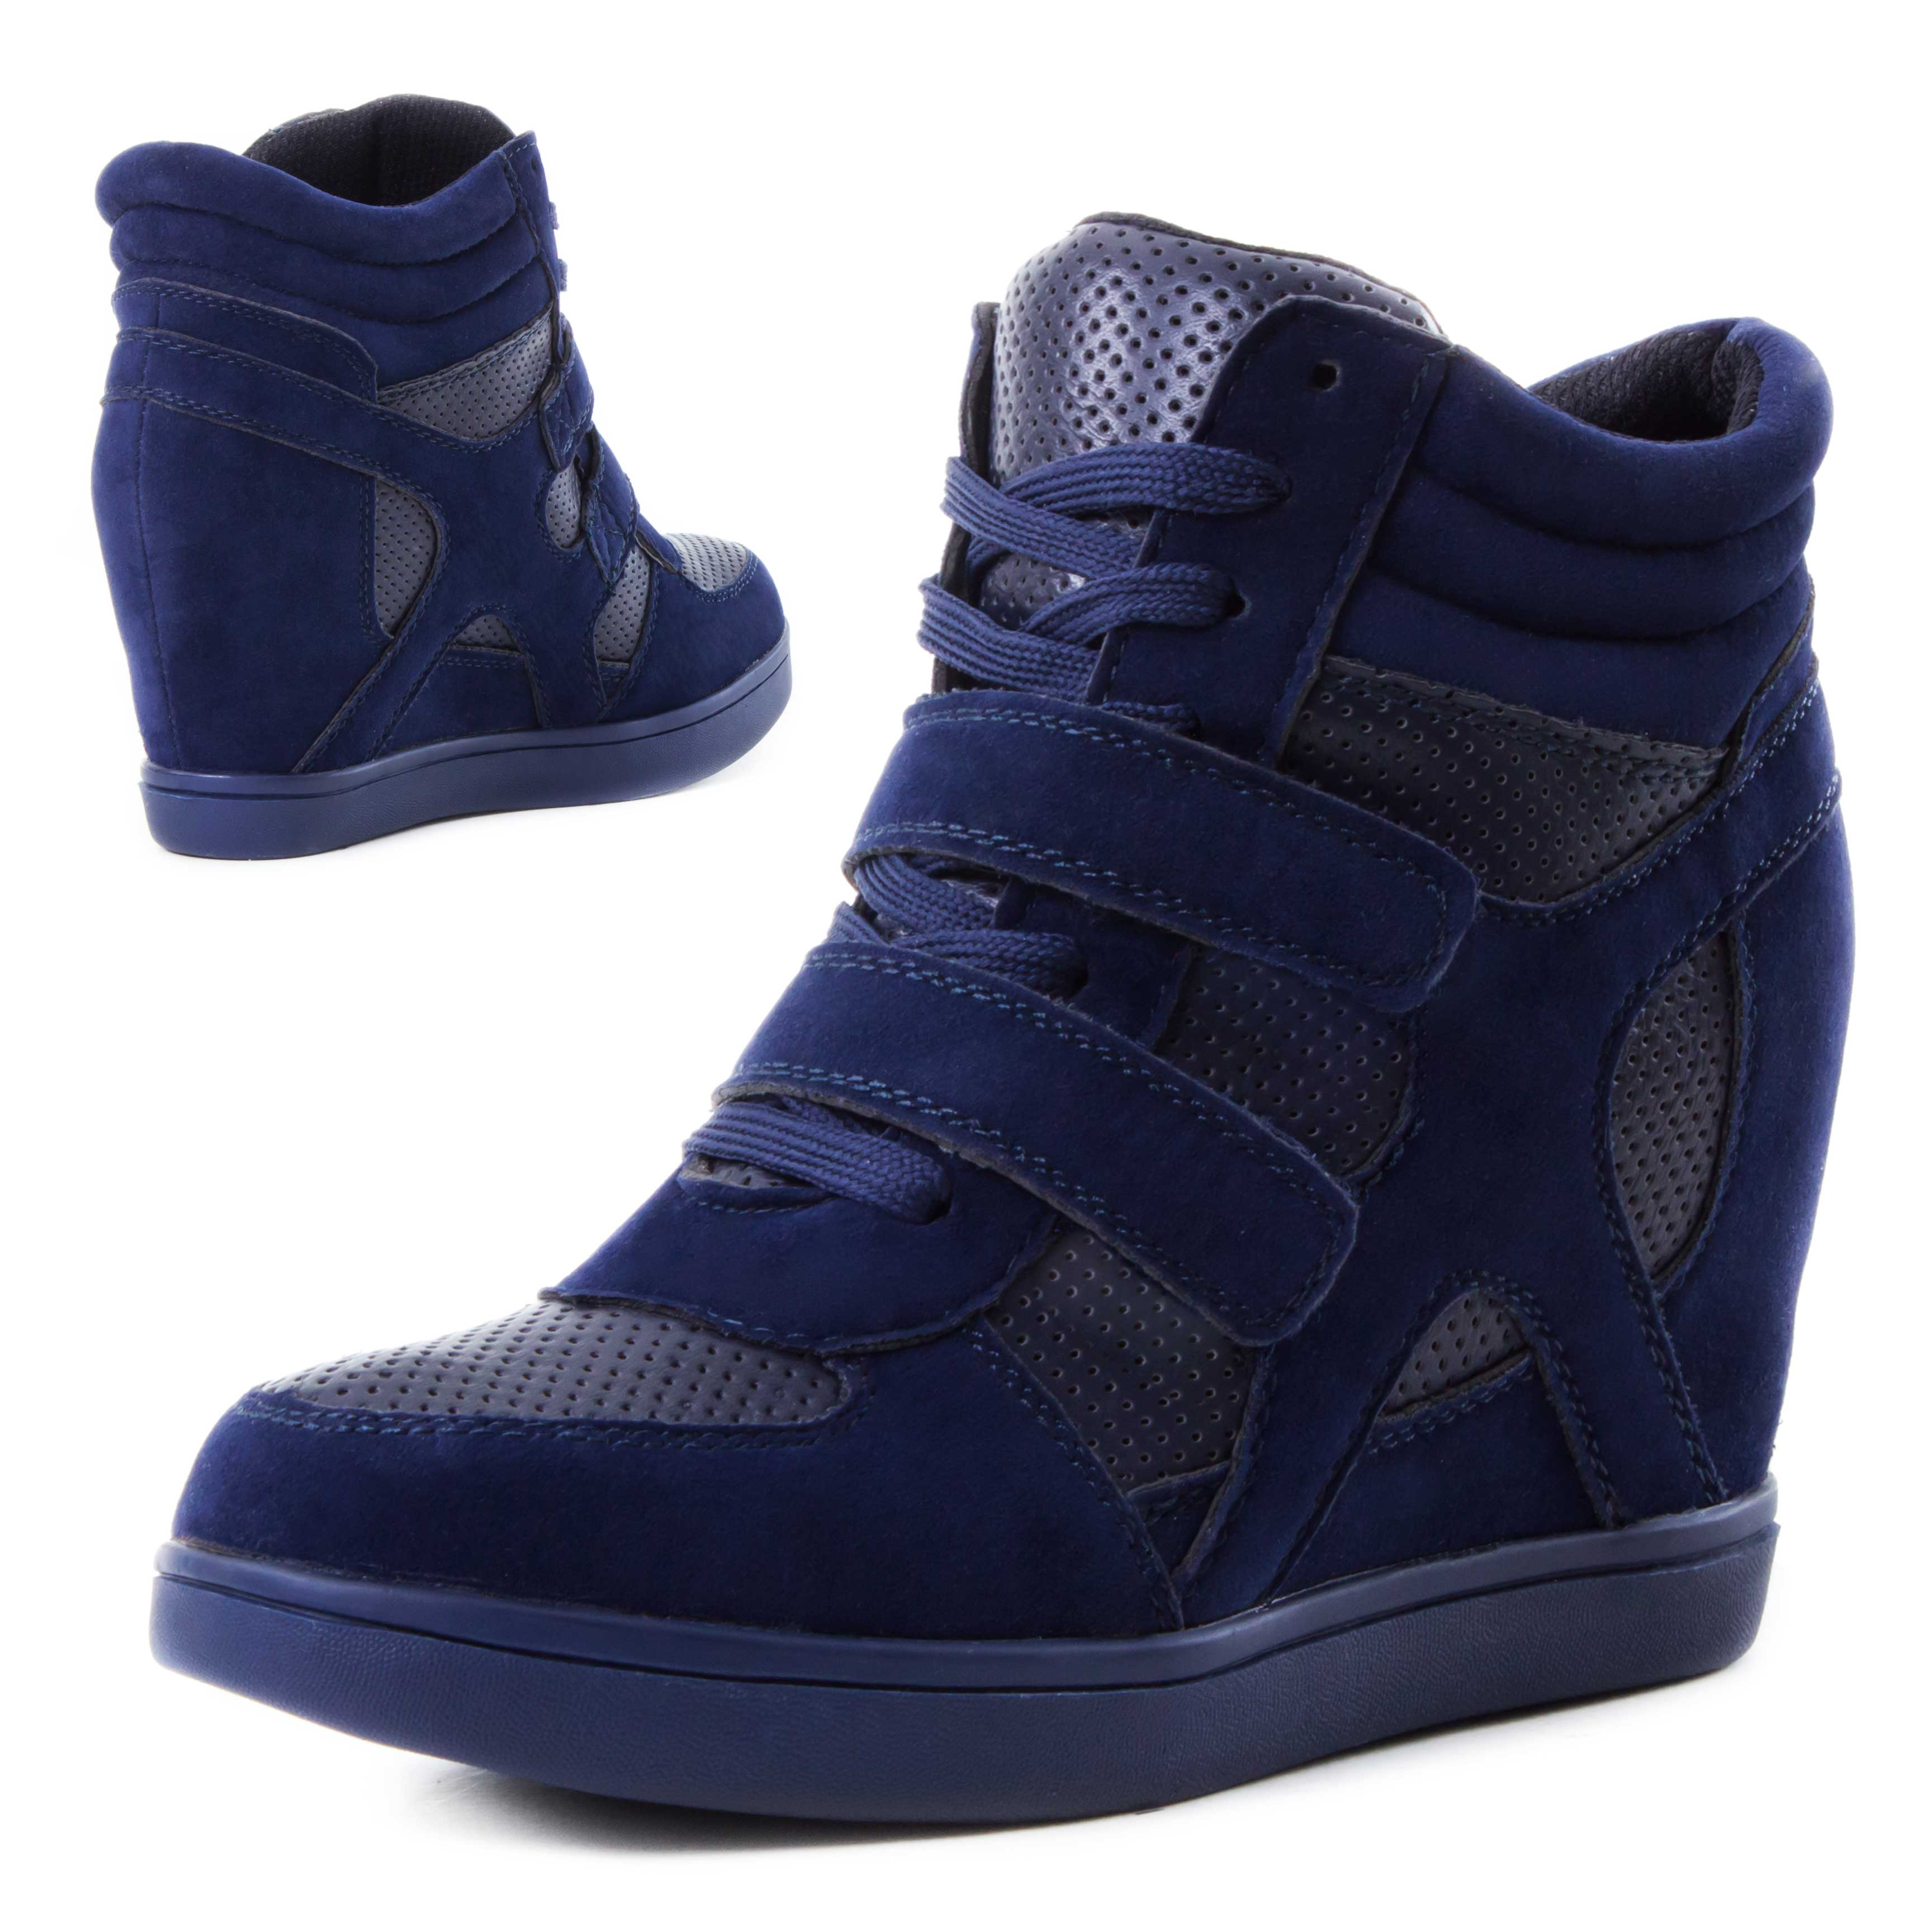 neu damen high top sneaker wedges mit klettverschluss groesse 36 37 38. Black Bedroom Furniture Sets. Home Design Ideas